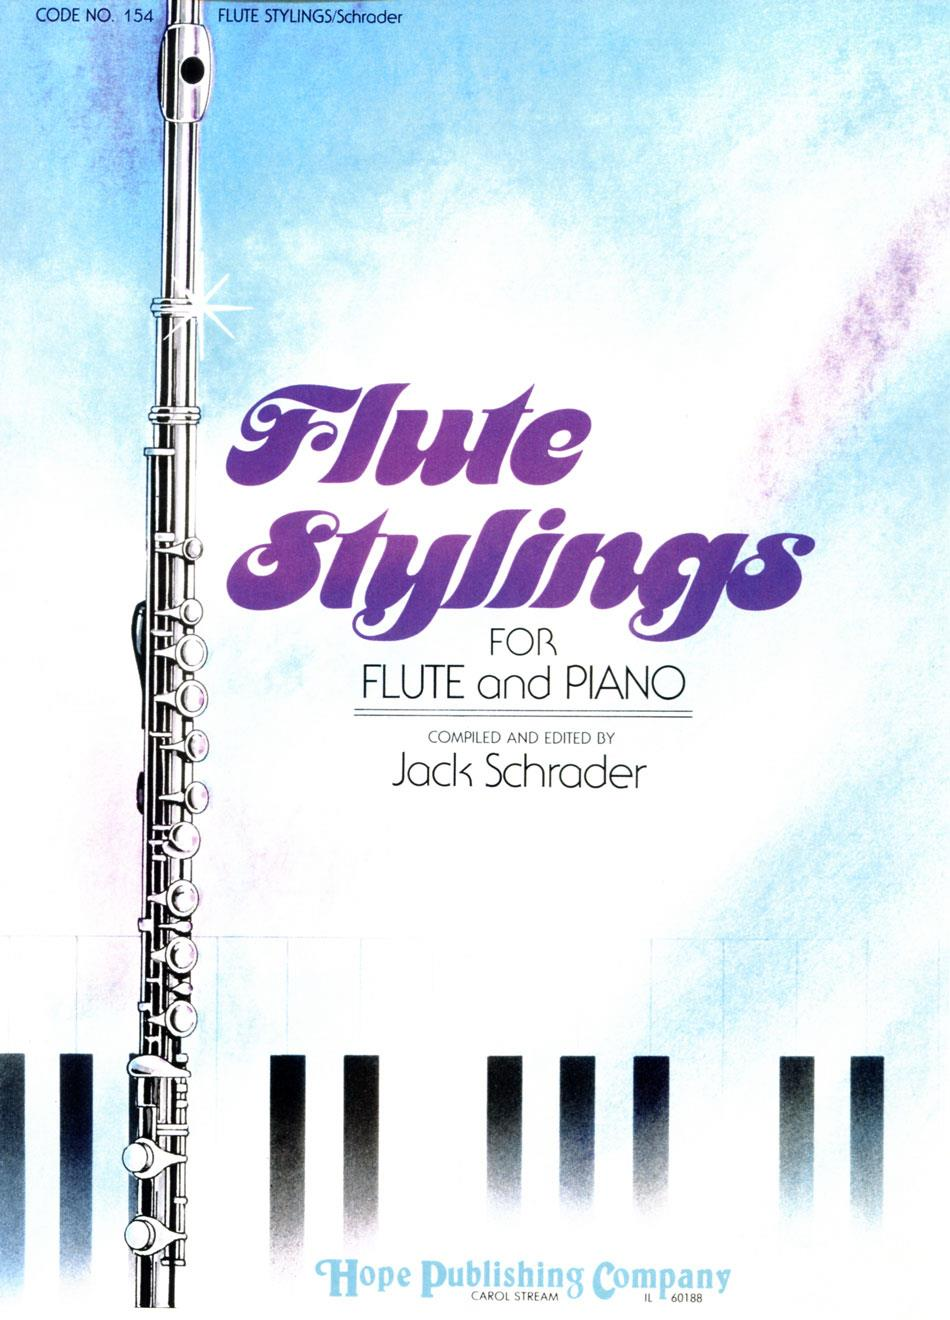 Flute Stylings Cover Image